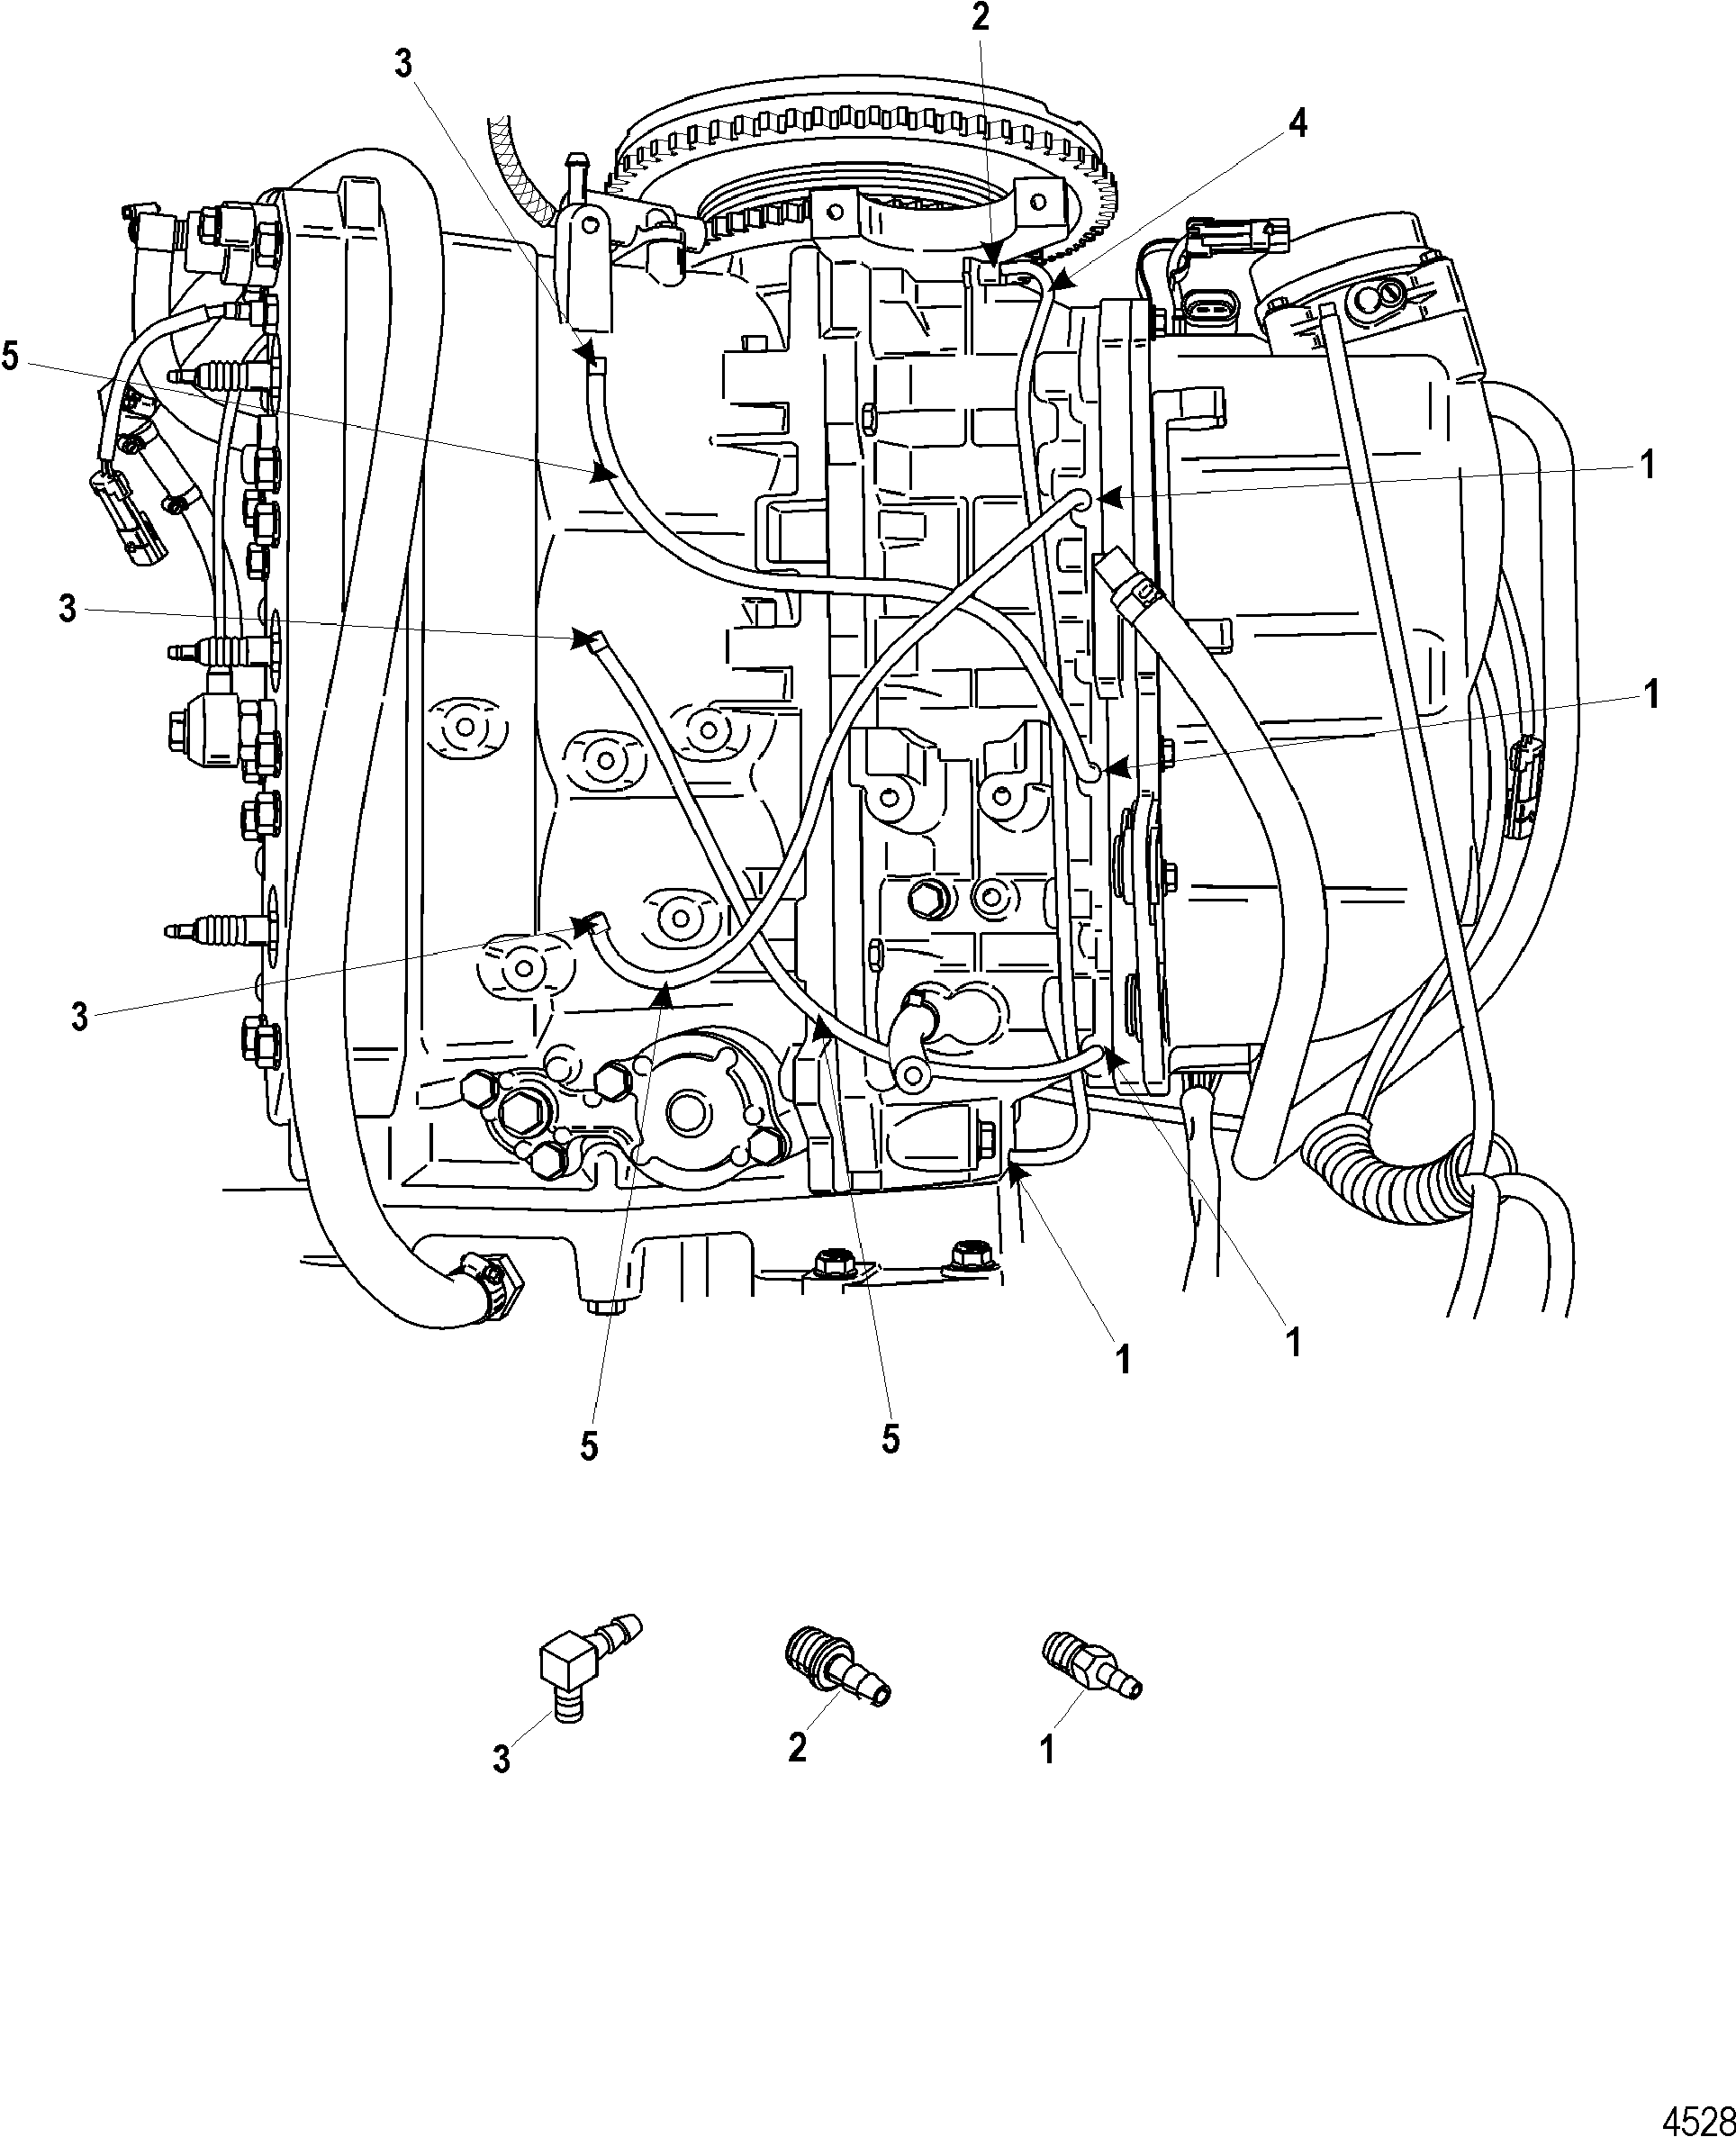 150 Hp Mercury Outboard Wiring Diagram